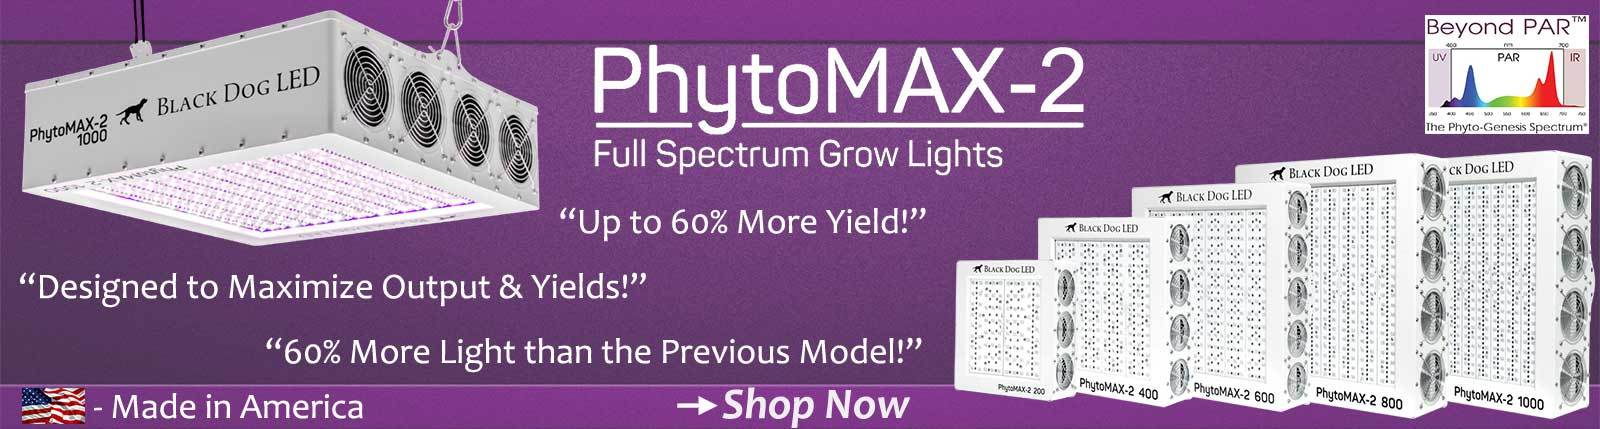 Black Dog LED PhytoMAX-2 Banner | GrowersLights